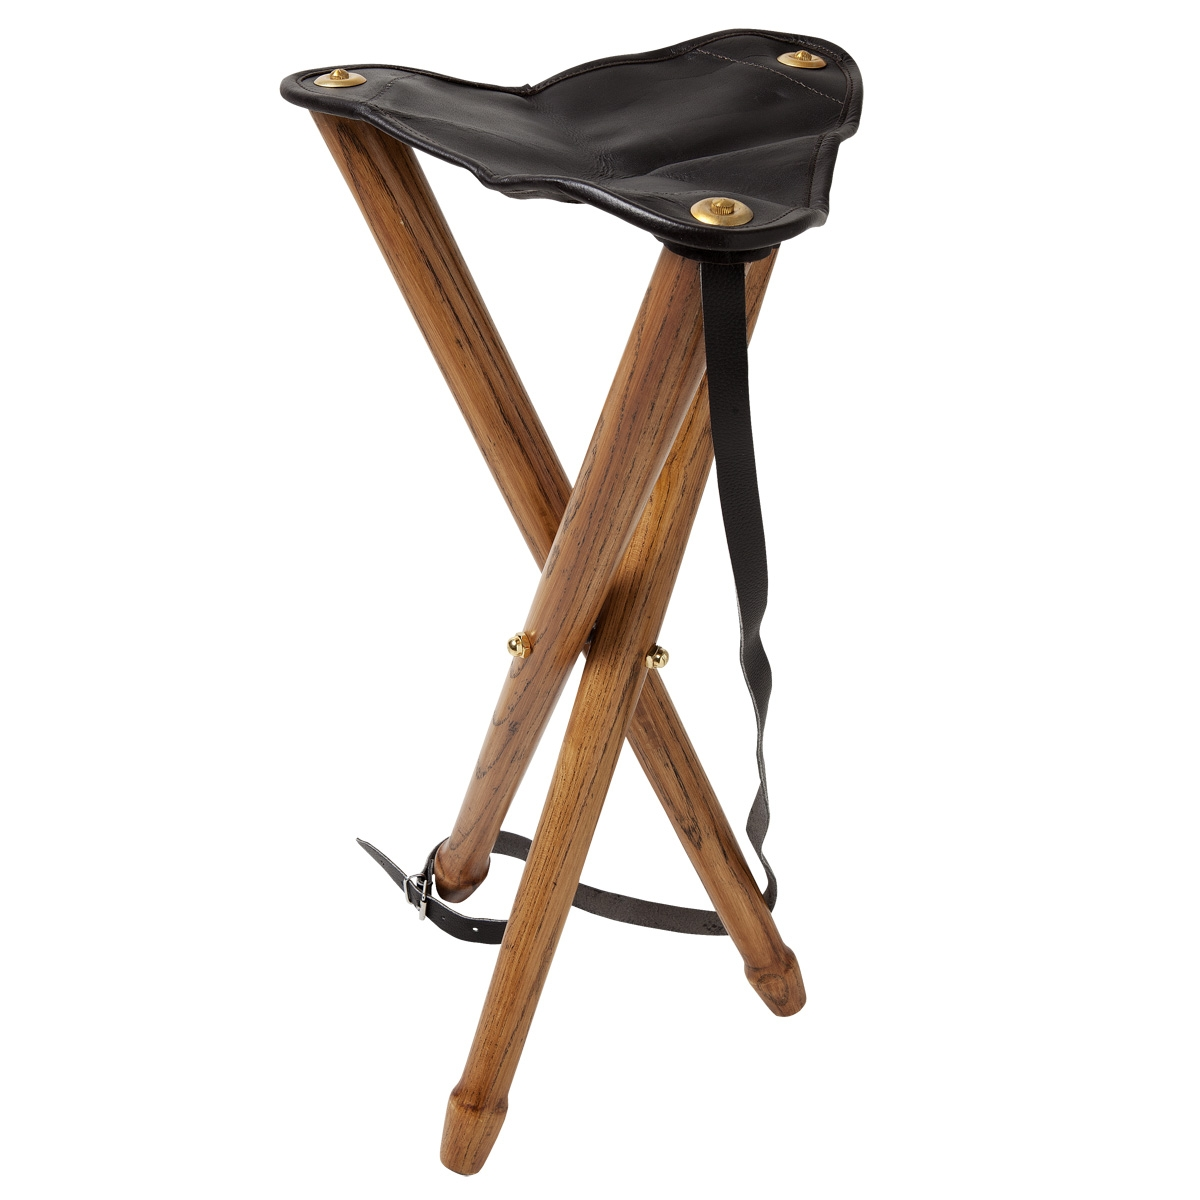 Exceptionnel Image Of Seeland 3 Legged Chair